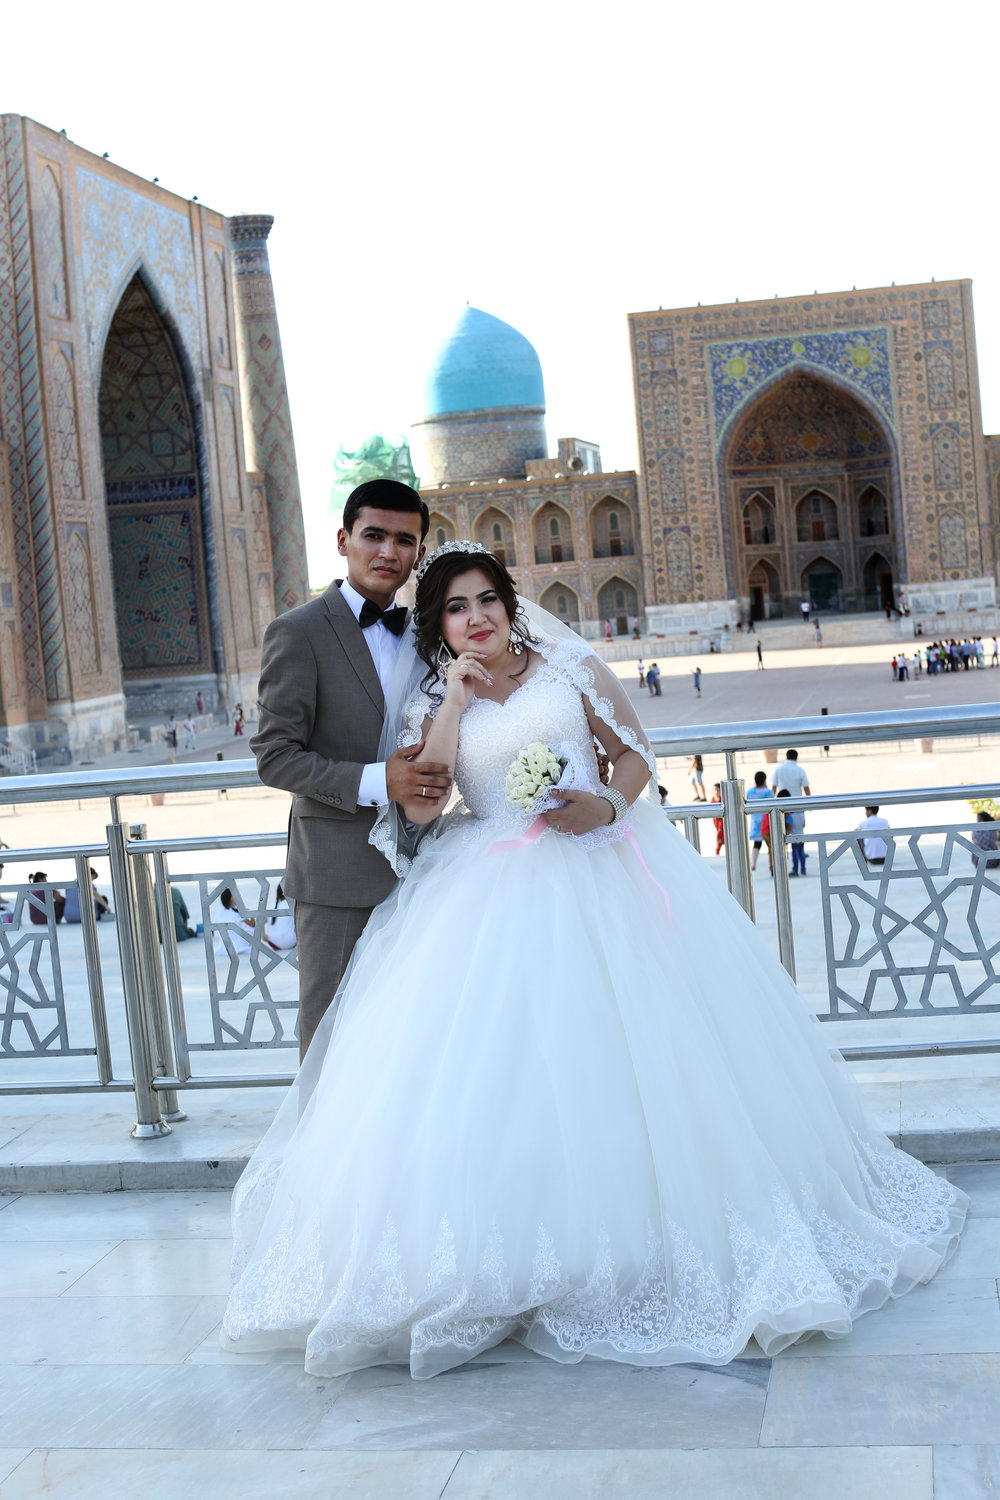 A wedding in Samarkand